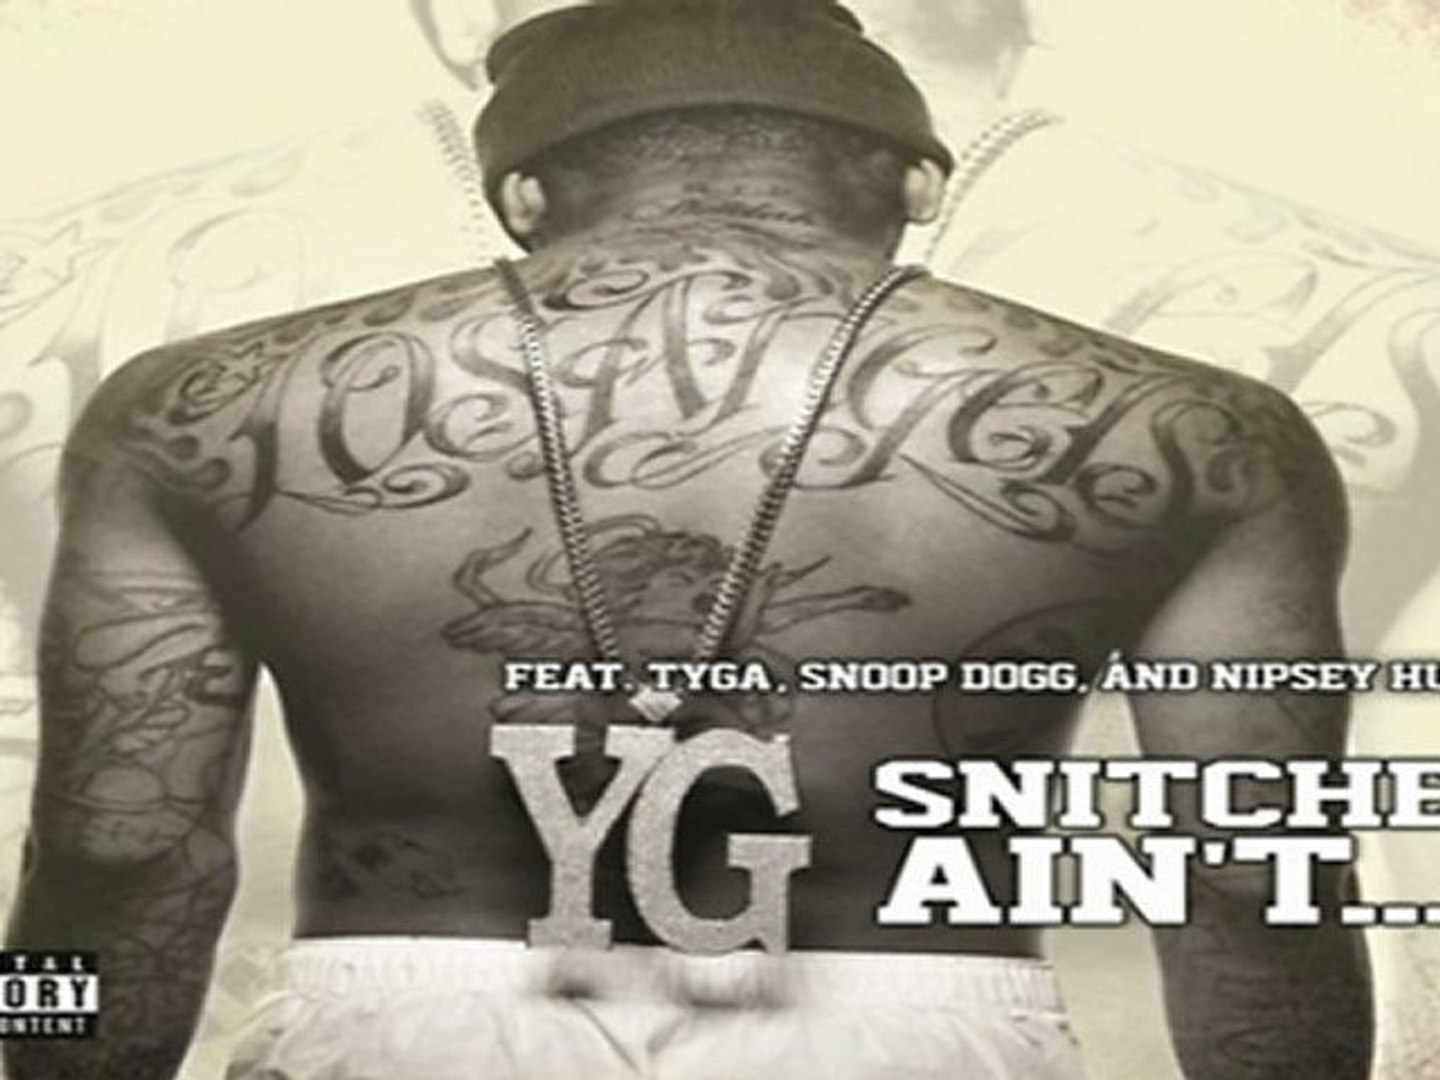 [ DOWNLOAD ] YG - Snitches Ain't    Feat  Tyga, Snoop Dogg & Nipsey Hussle  SINGLE 2012 [ NO SURVEY ]